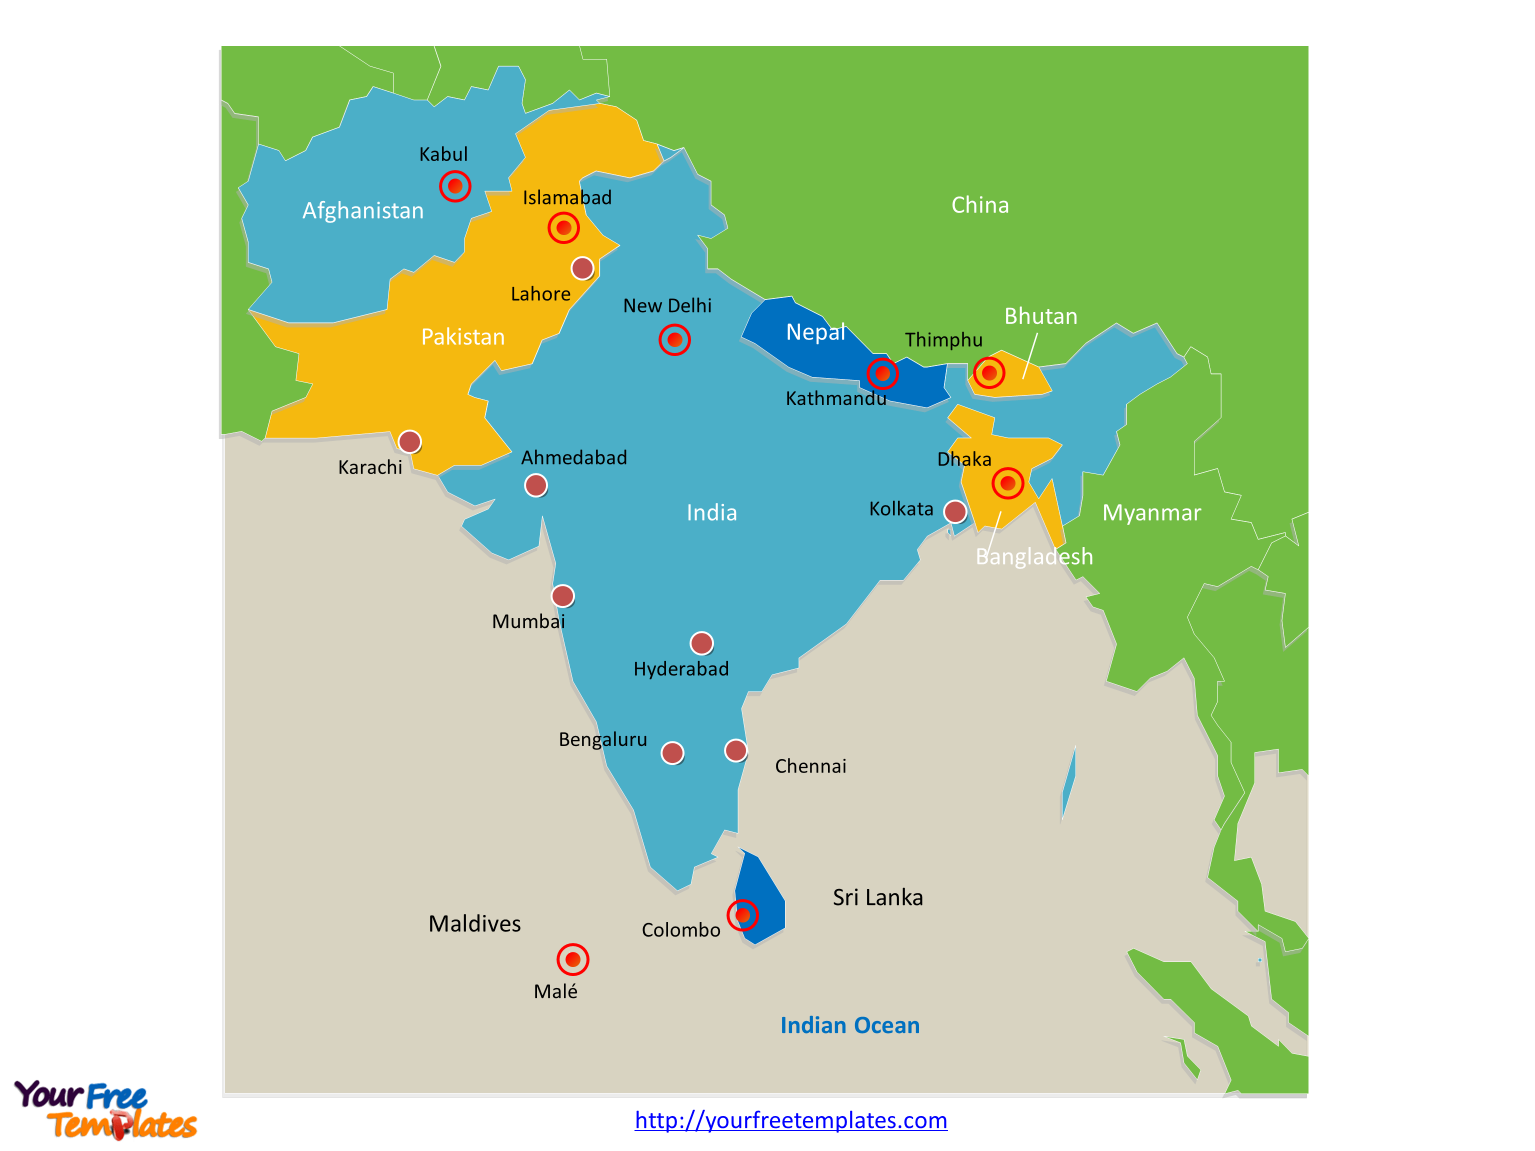 South Asia Map Free Templates Free Powerpoint Templates